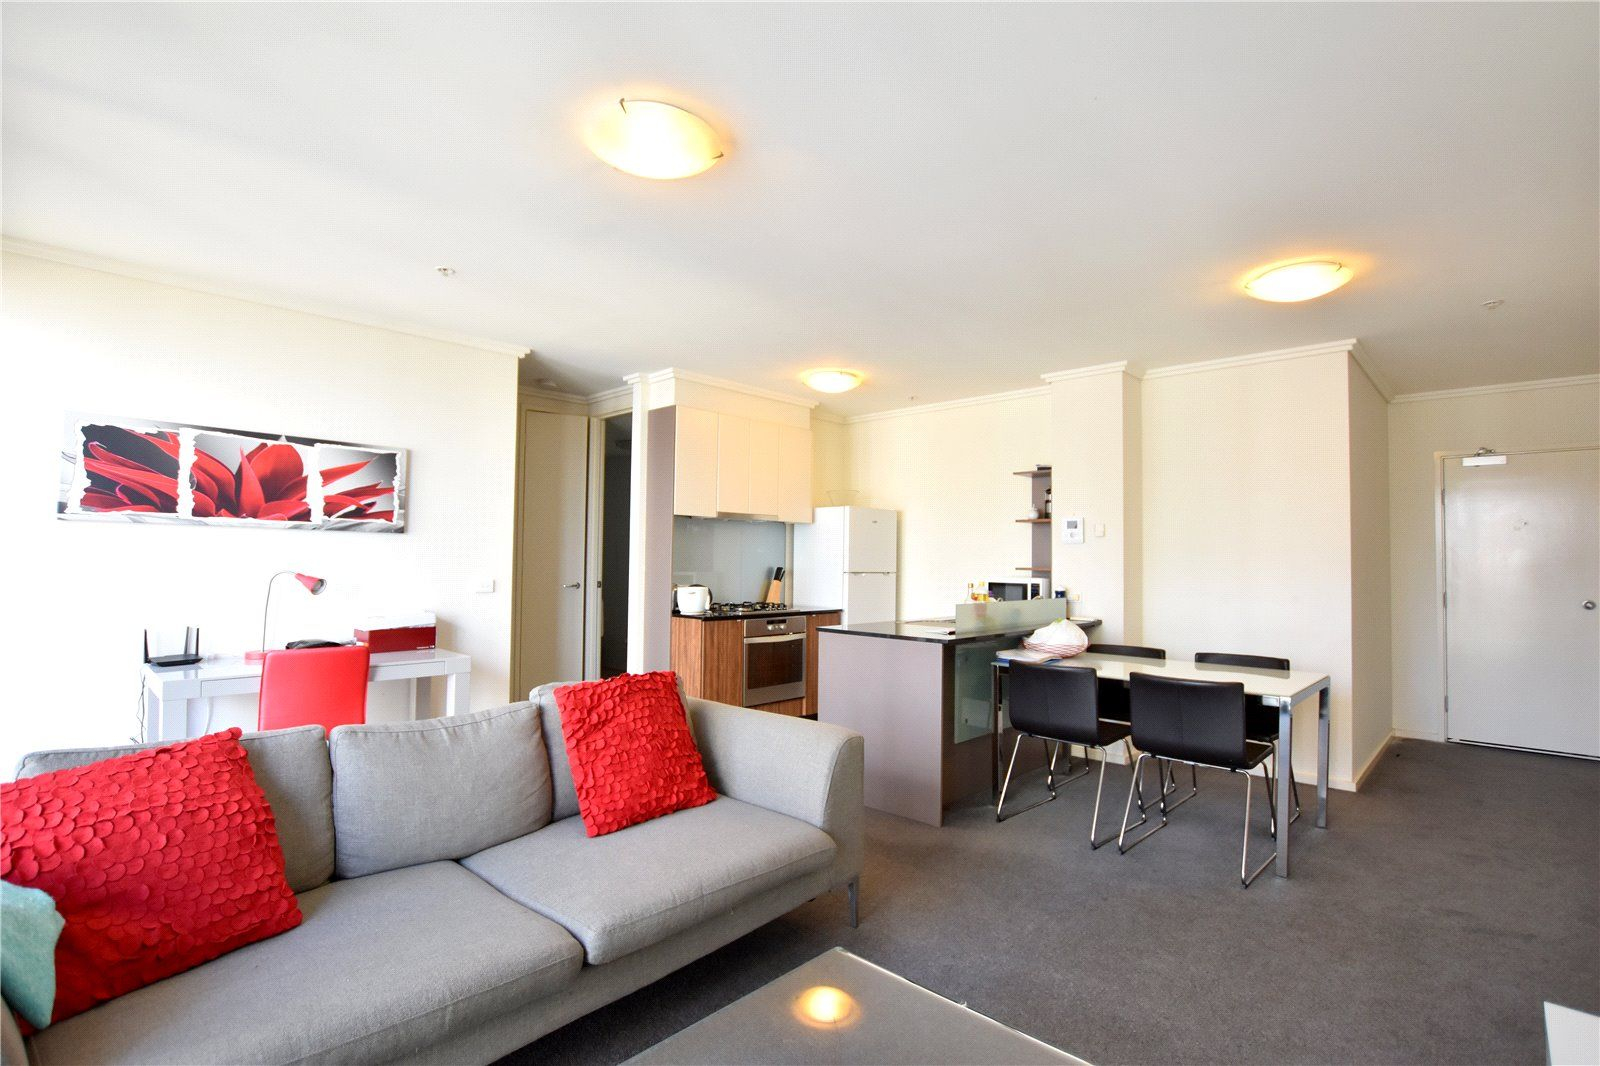 Sentinel: 23rd Floor - Modern and Spacious!